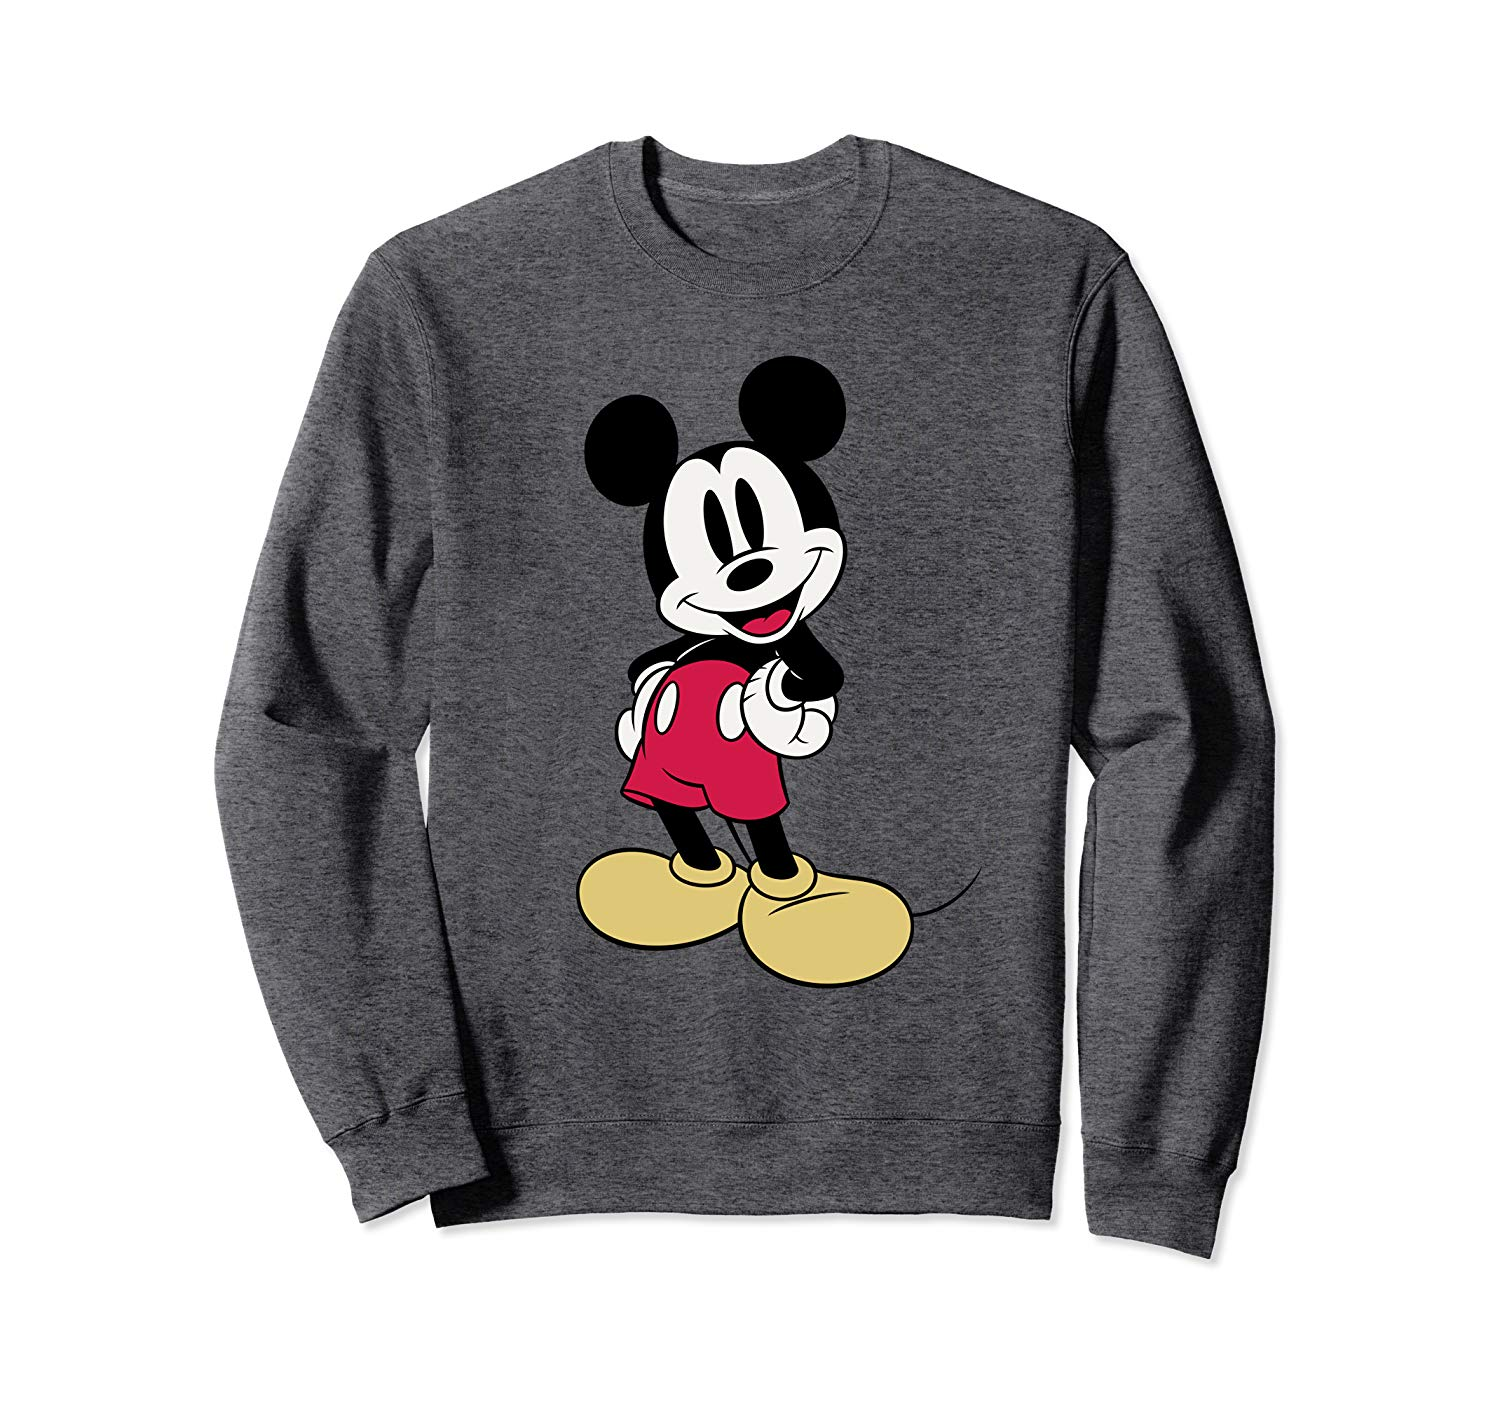 Disney Classic Mickey Mouse Long Sleeve T-Shirt